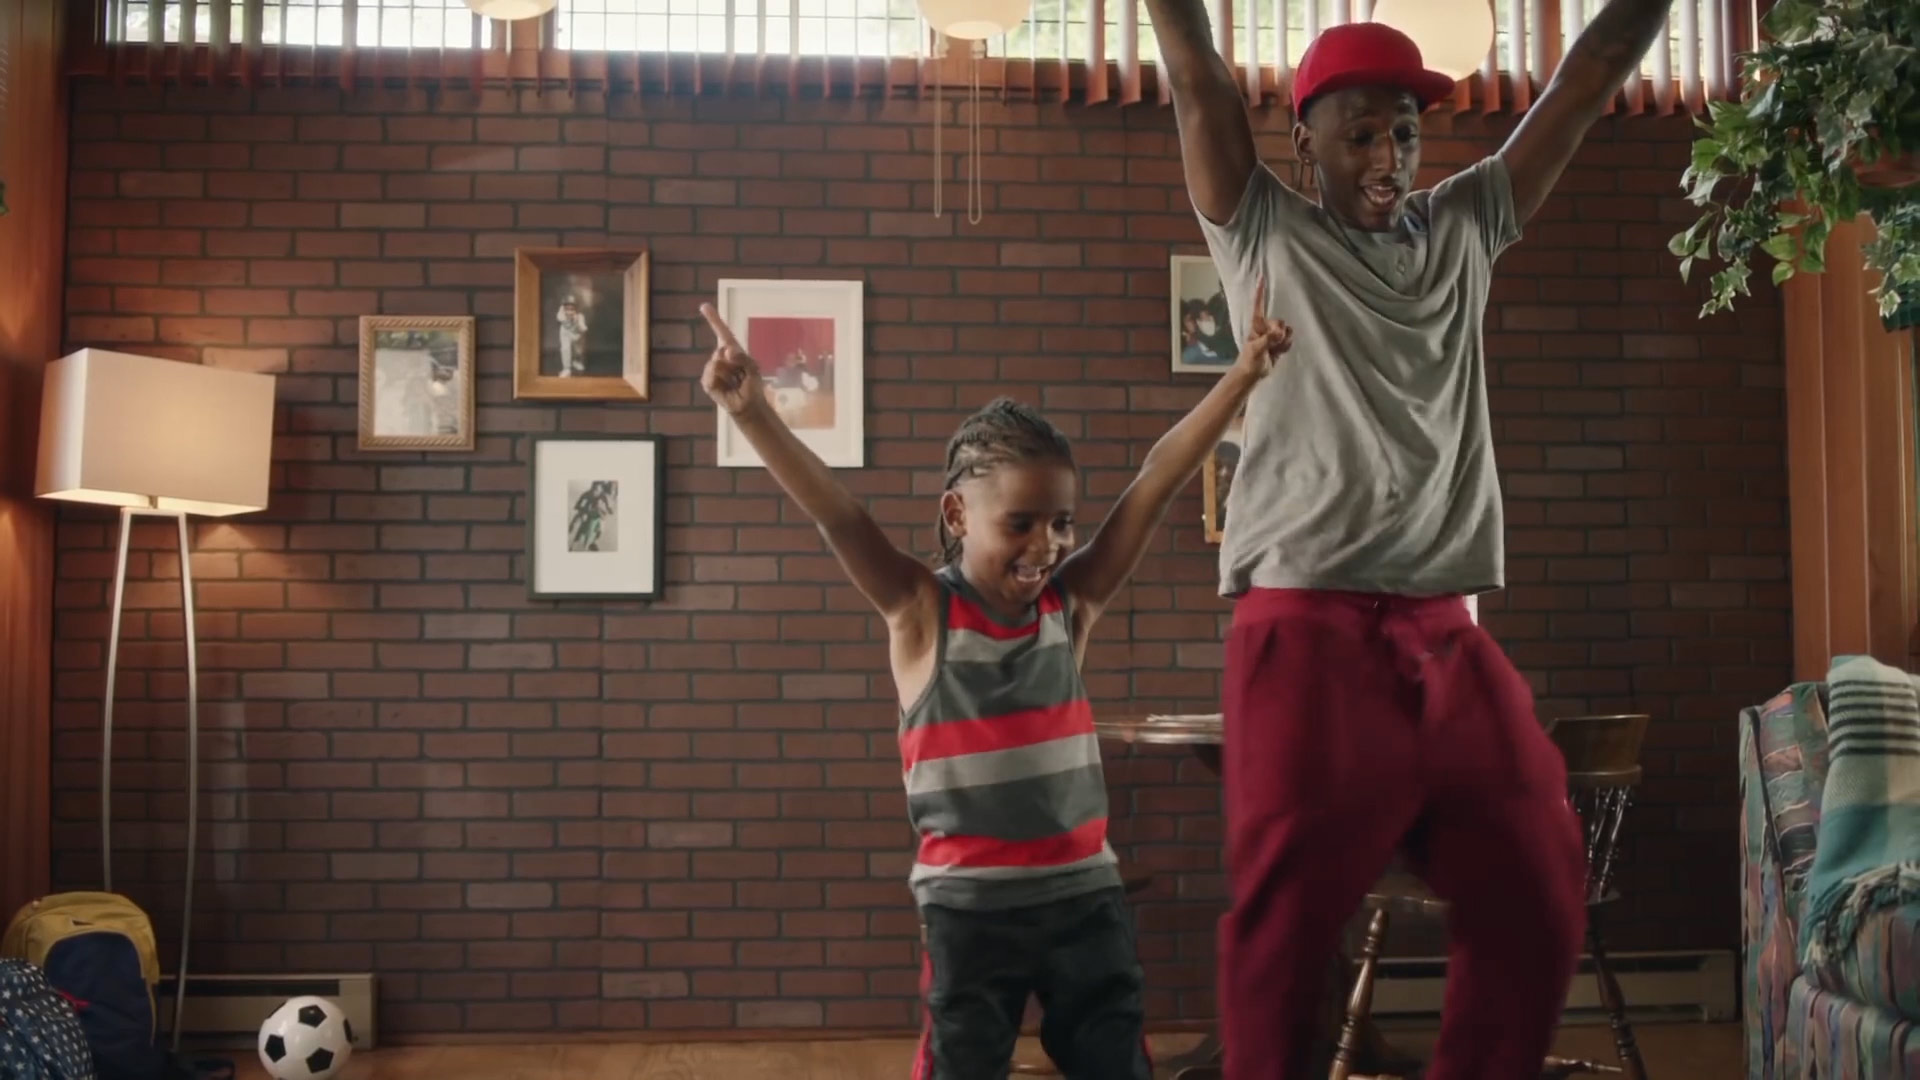 Dancing Dads - Composition: